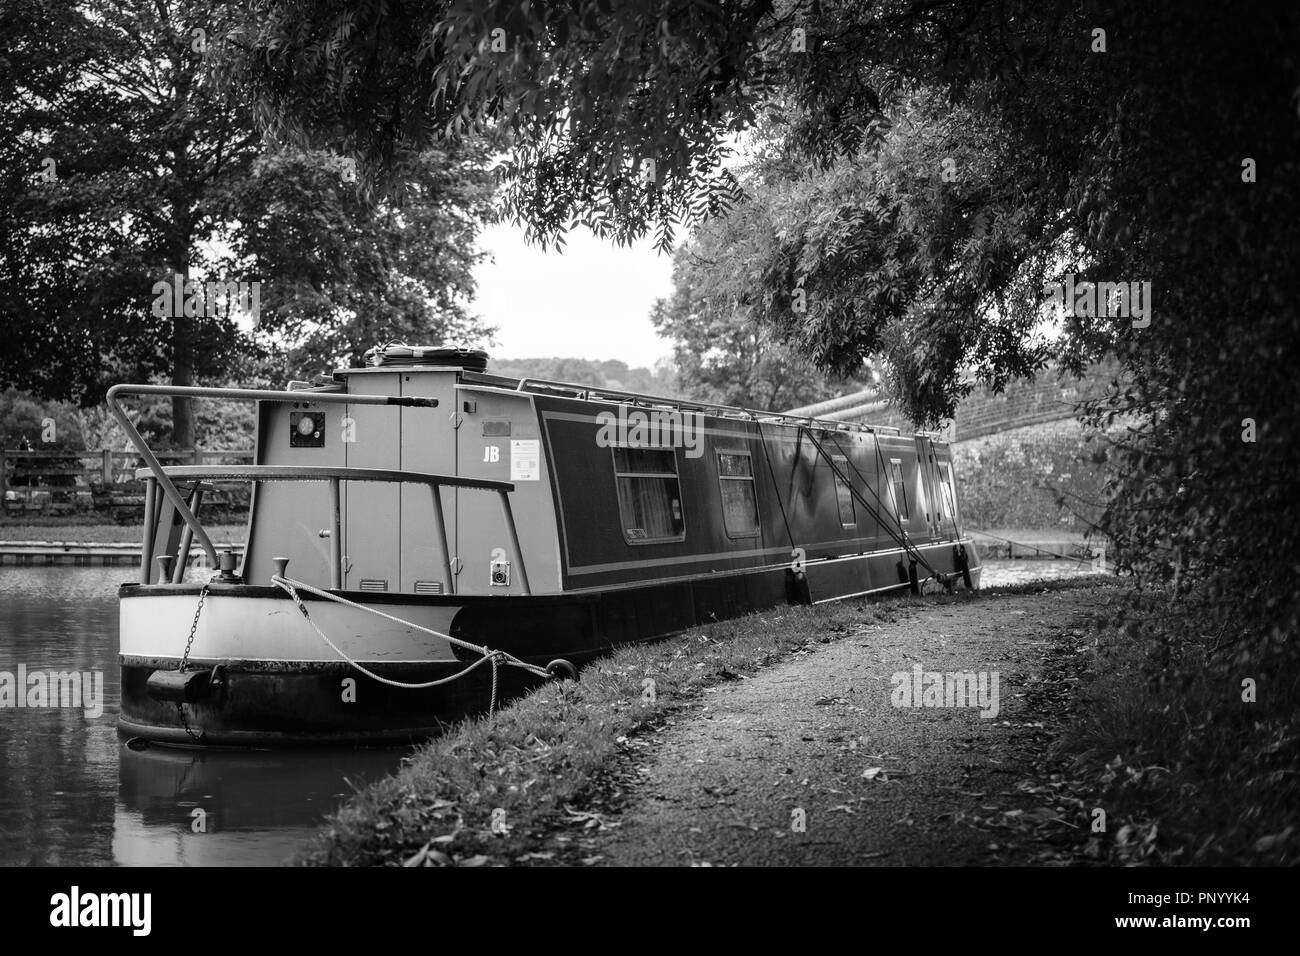 In the Basin. Foxton Locks in Foxton, Leicestershire, are ten canal locks consisting of two 'staircases' each of five locks on the Grand Union Canal. - Stock Image